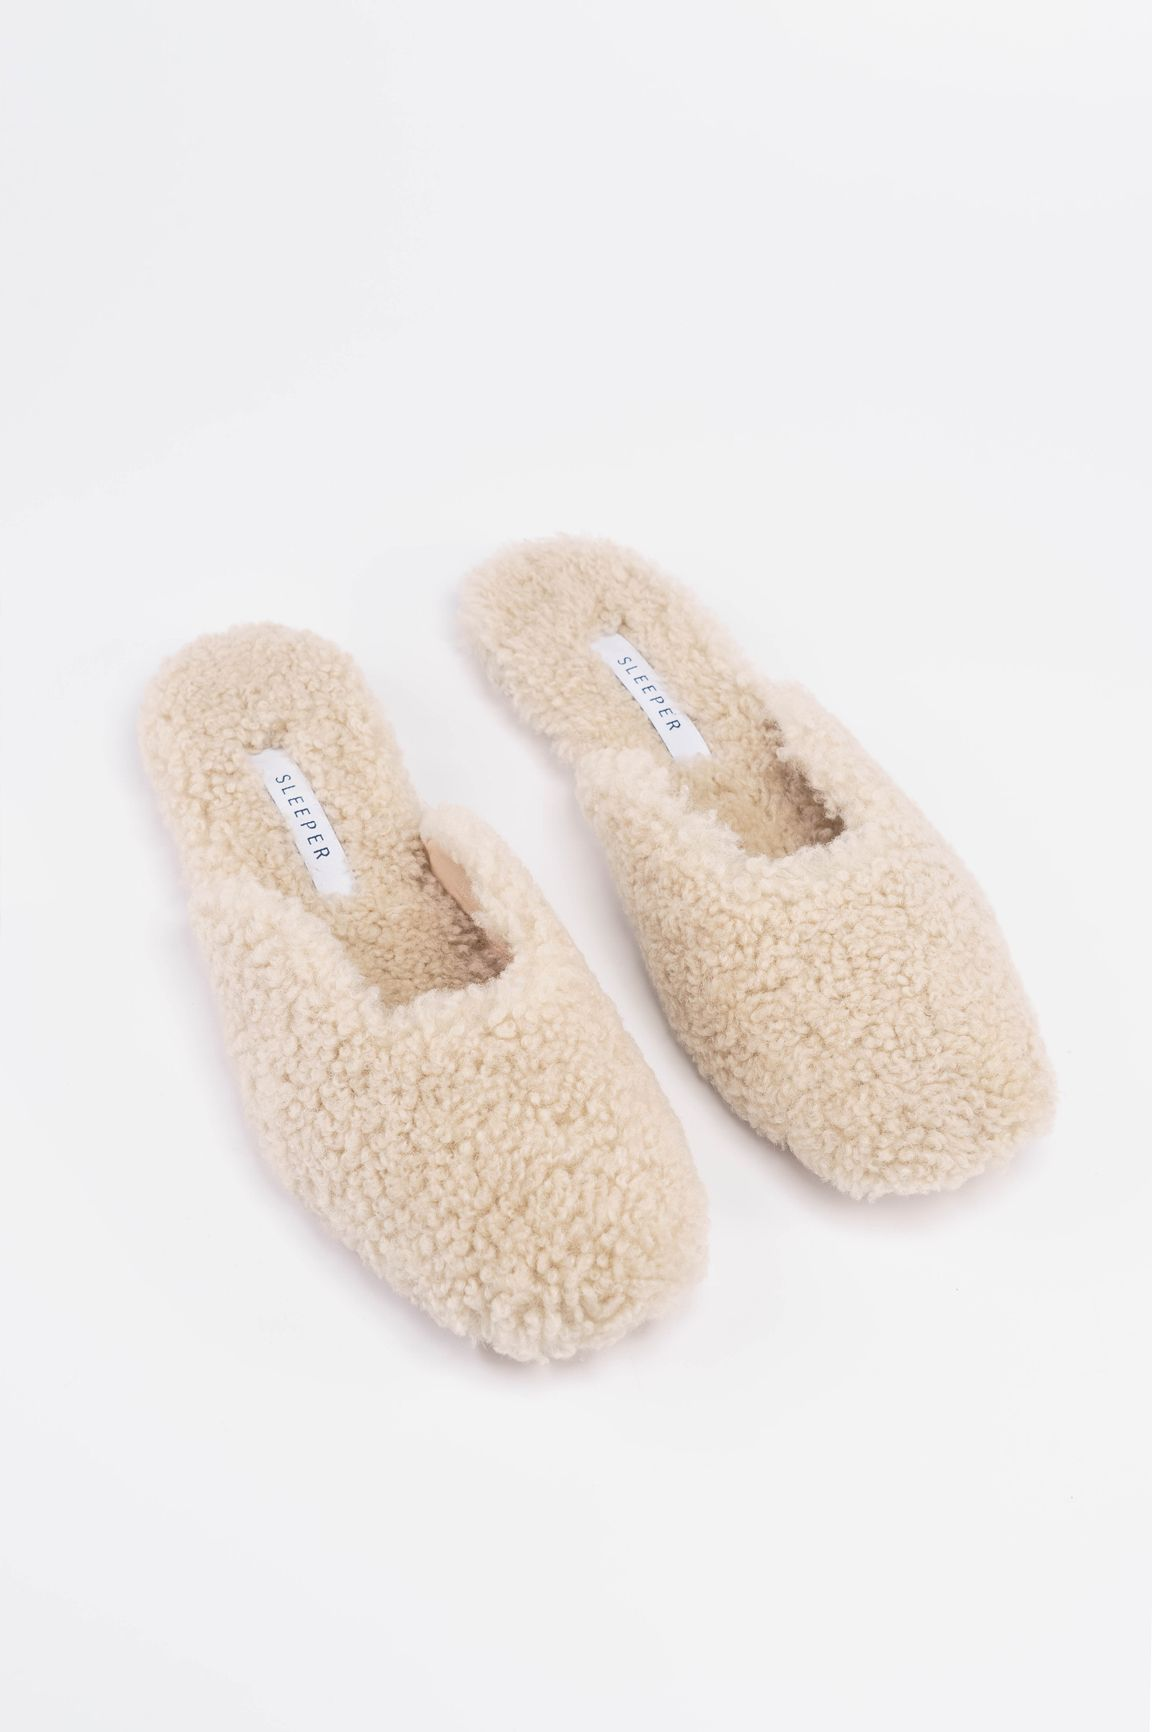 ad23ab285c4e Cream Shearling Slippers – Sleeper | SHOES in 2019 | Shearling ...